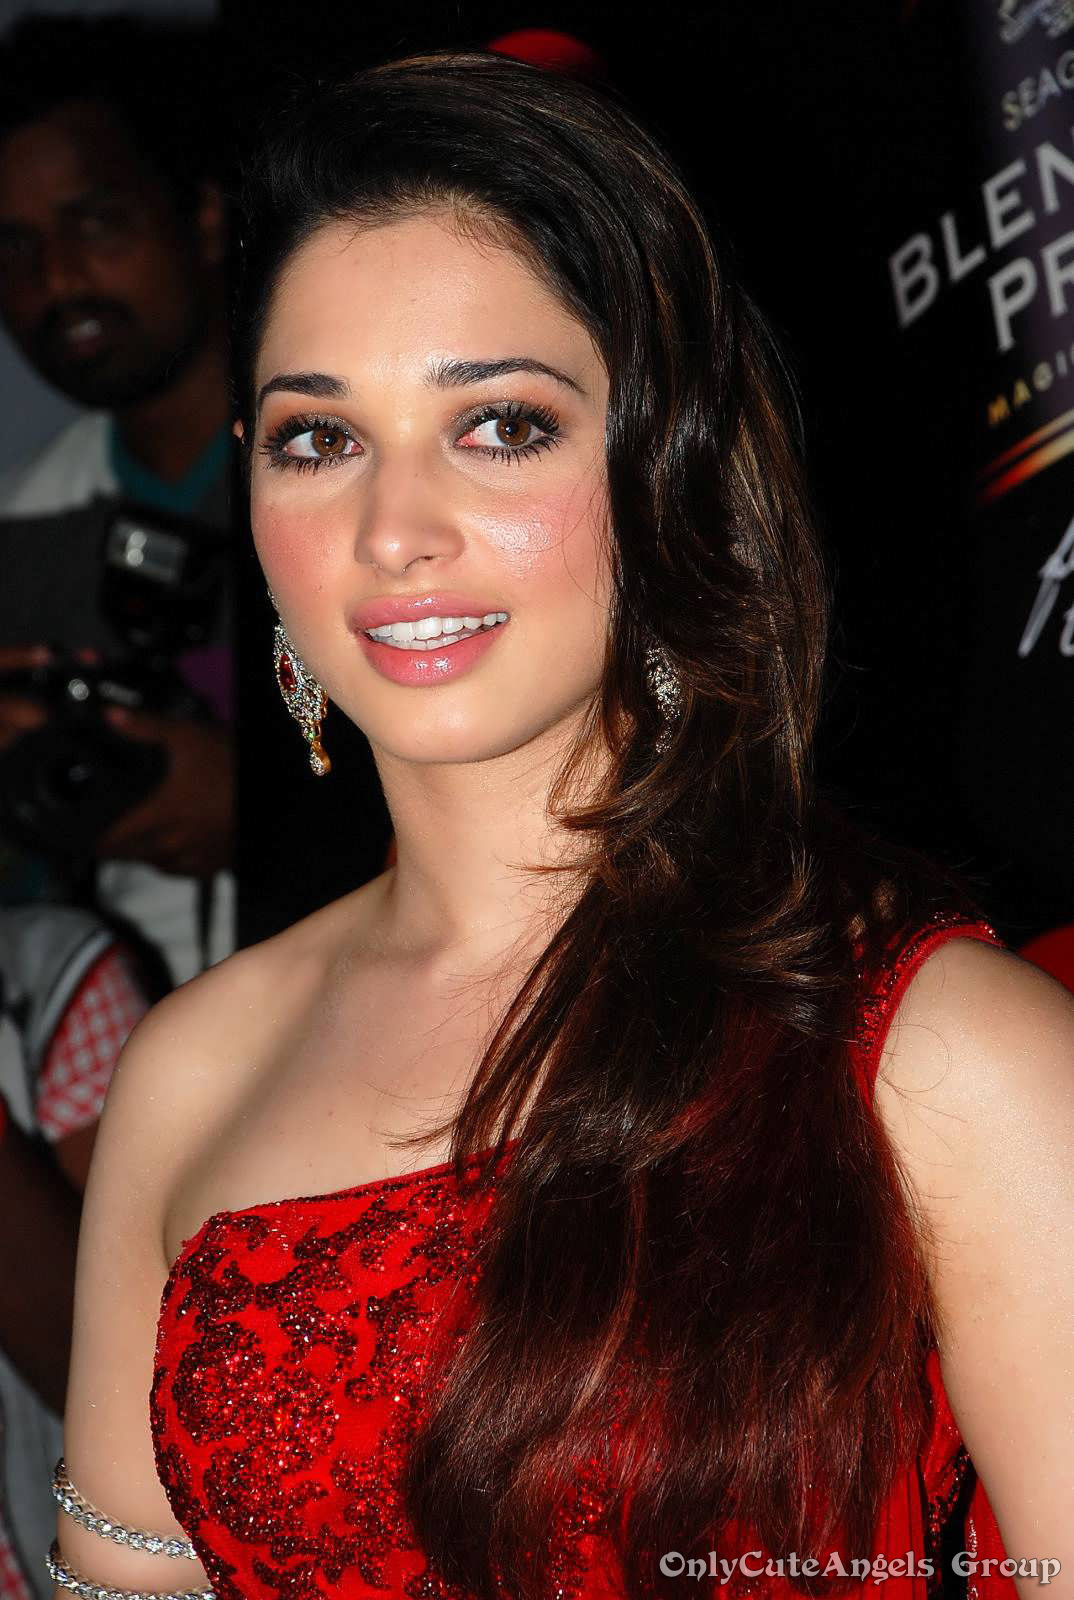 Tamanna Photo Gallery: Beautiful Wallpapers: Tamanna Wallpapers HD